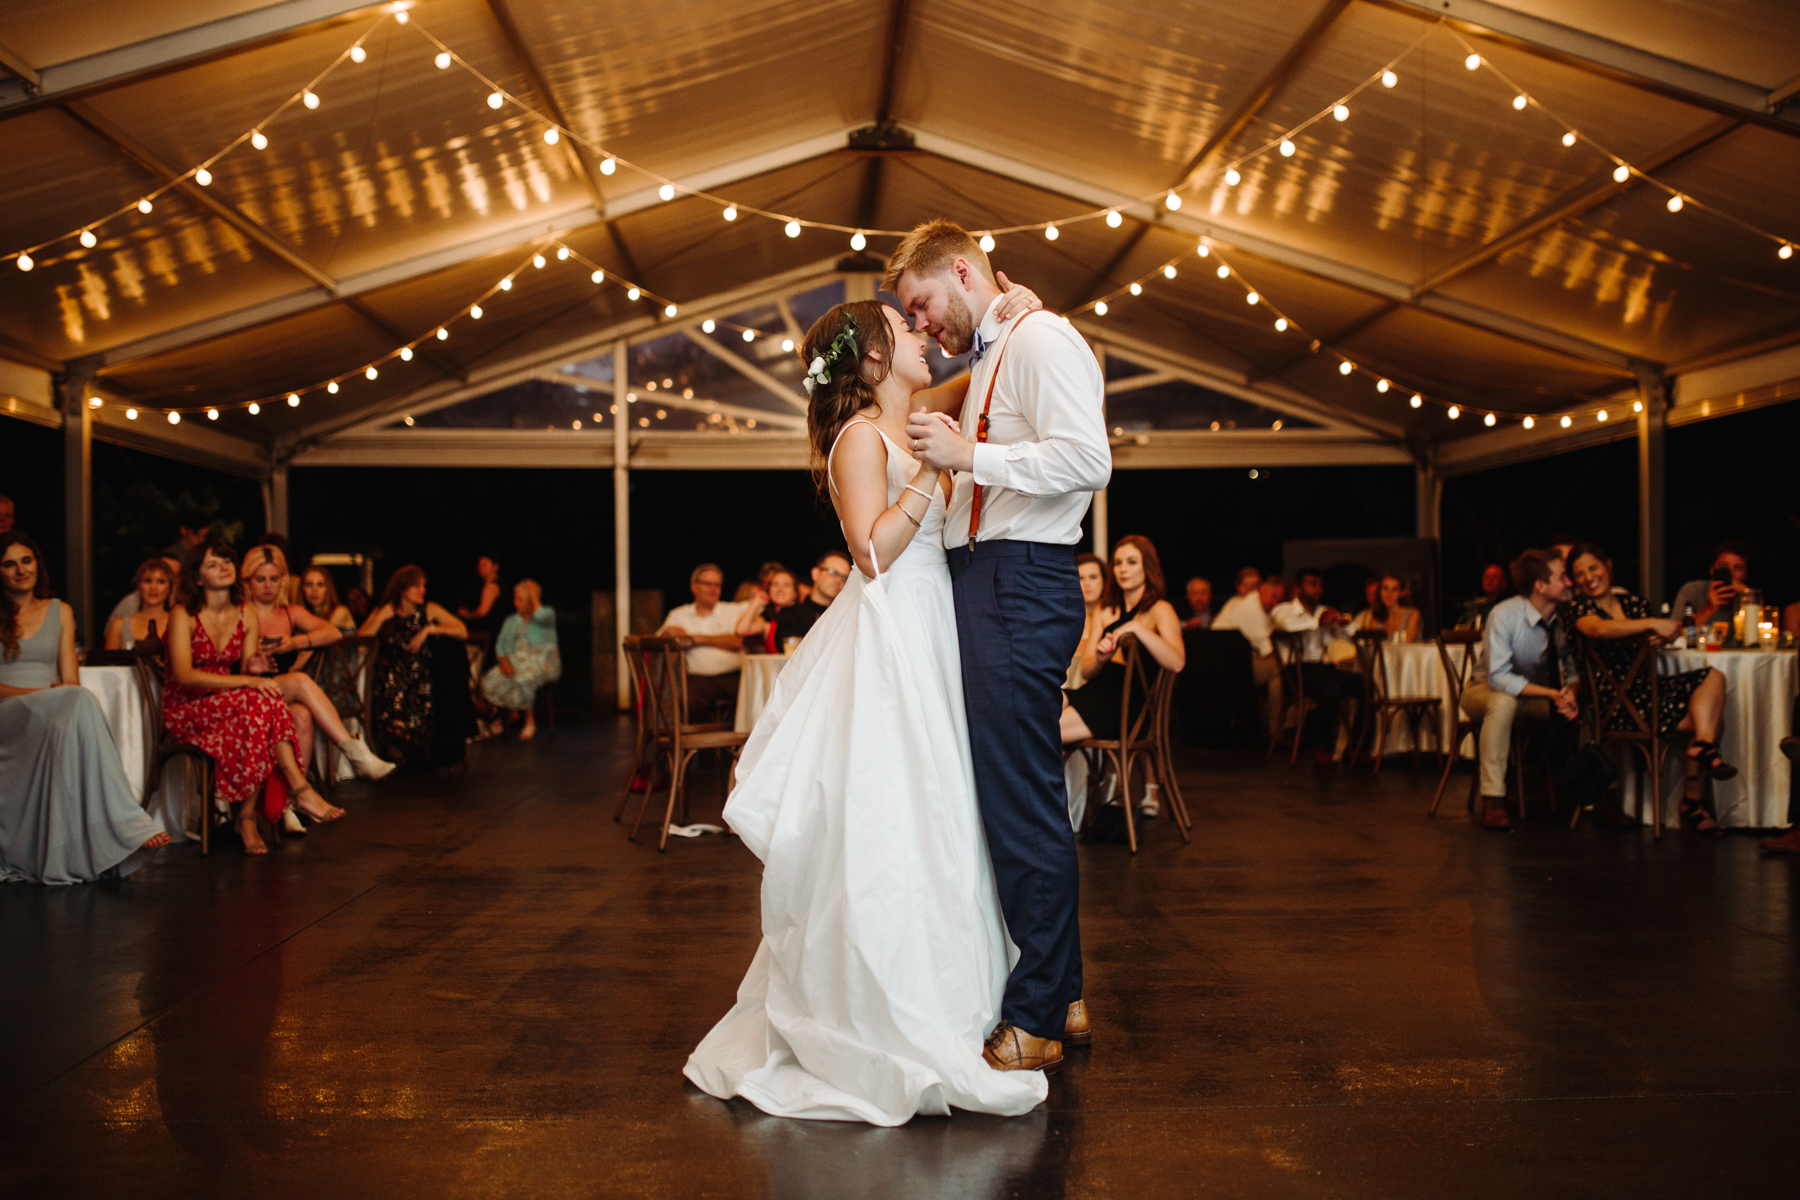 First dance under string lights at a Sunny summer wedding at Dara's Garden in Knoxville, Tennessee